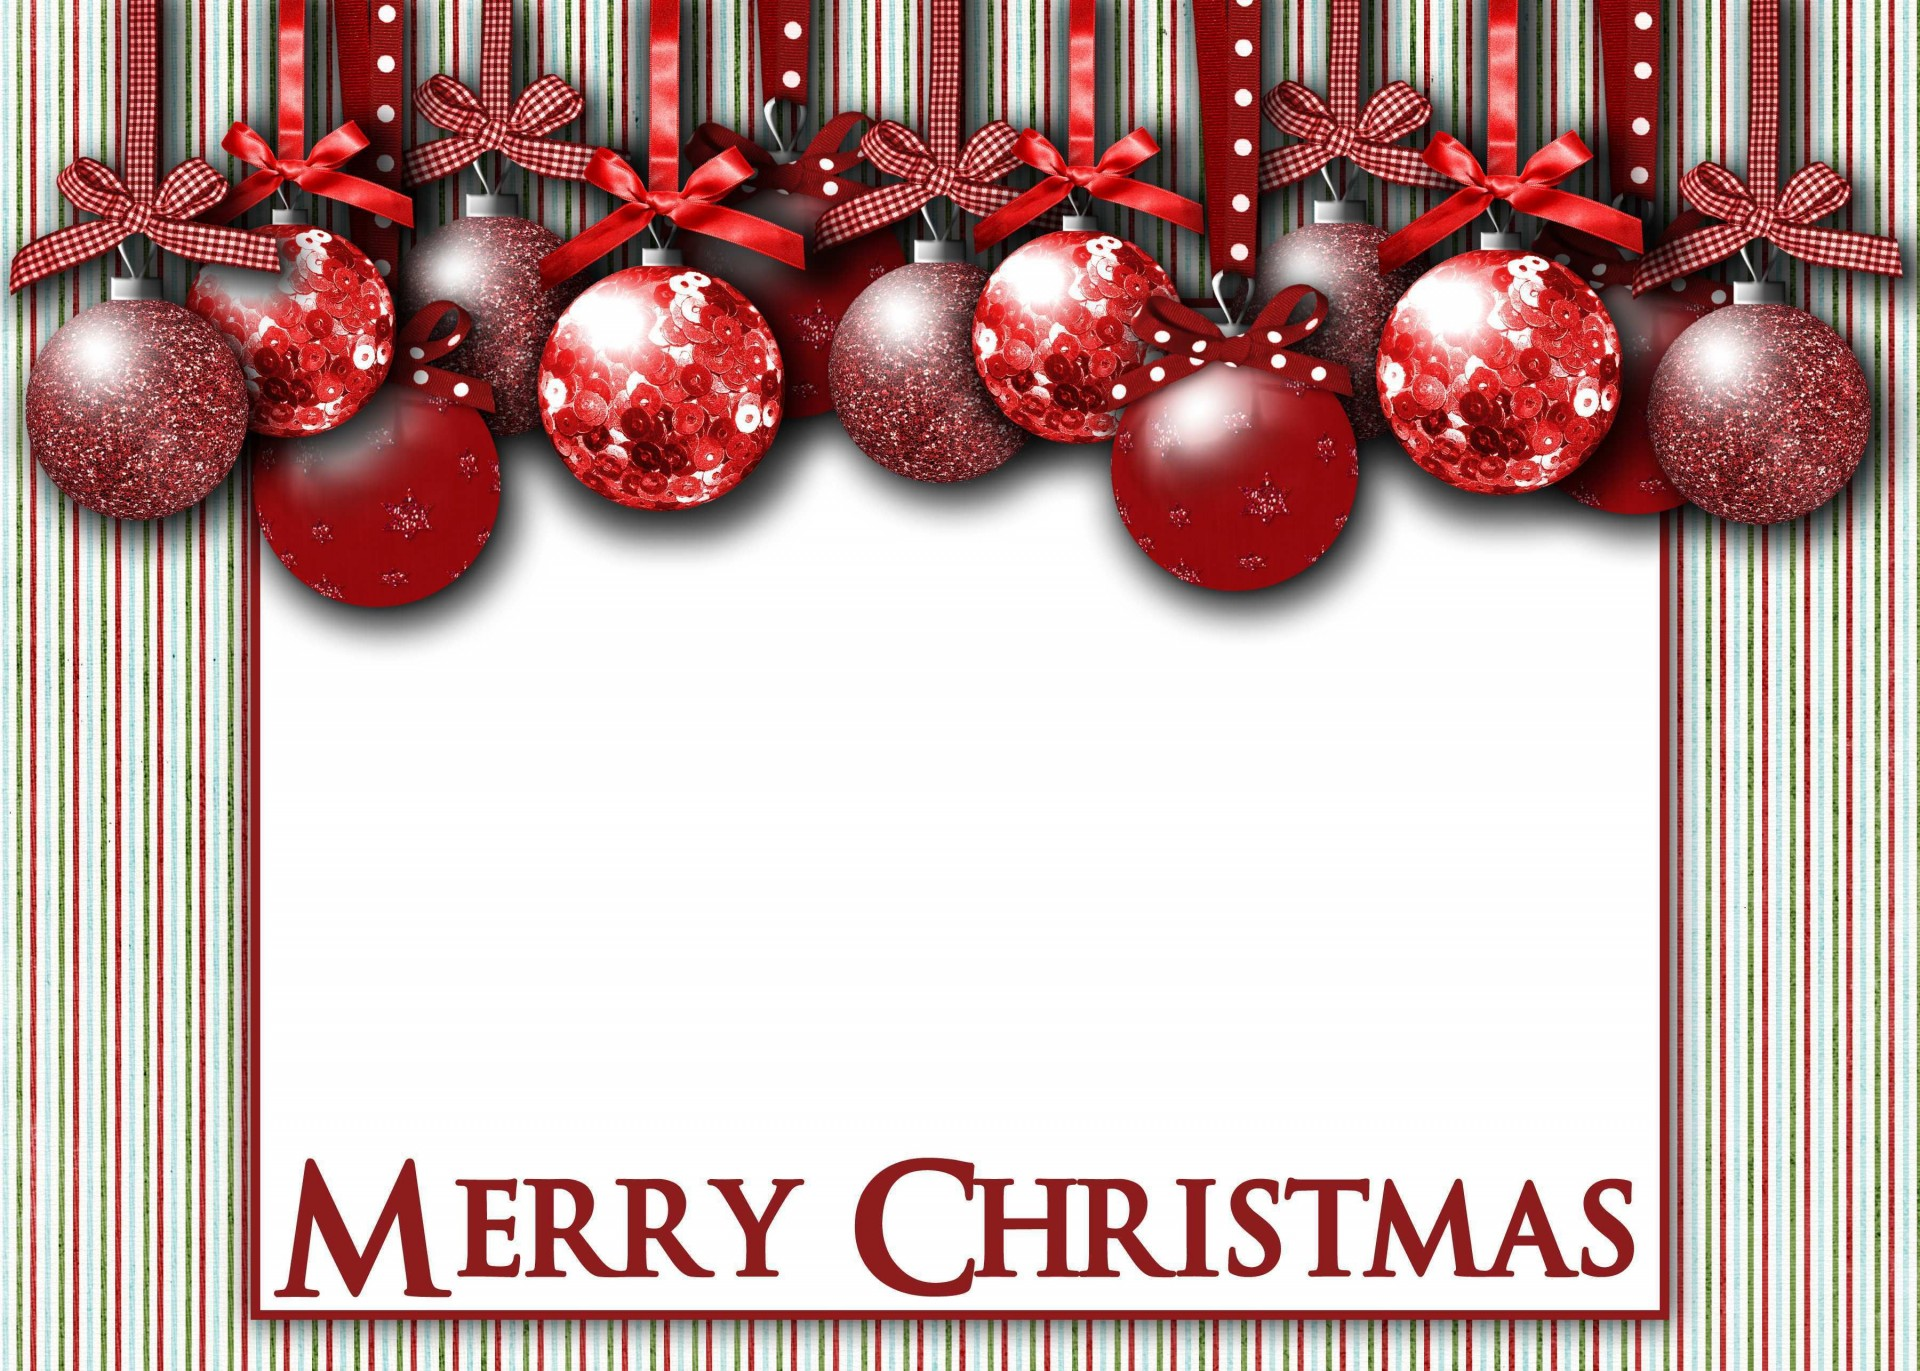 004 Rare Christma Card Template Free Download Idea  Photo Xma Place1920